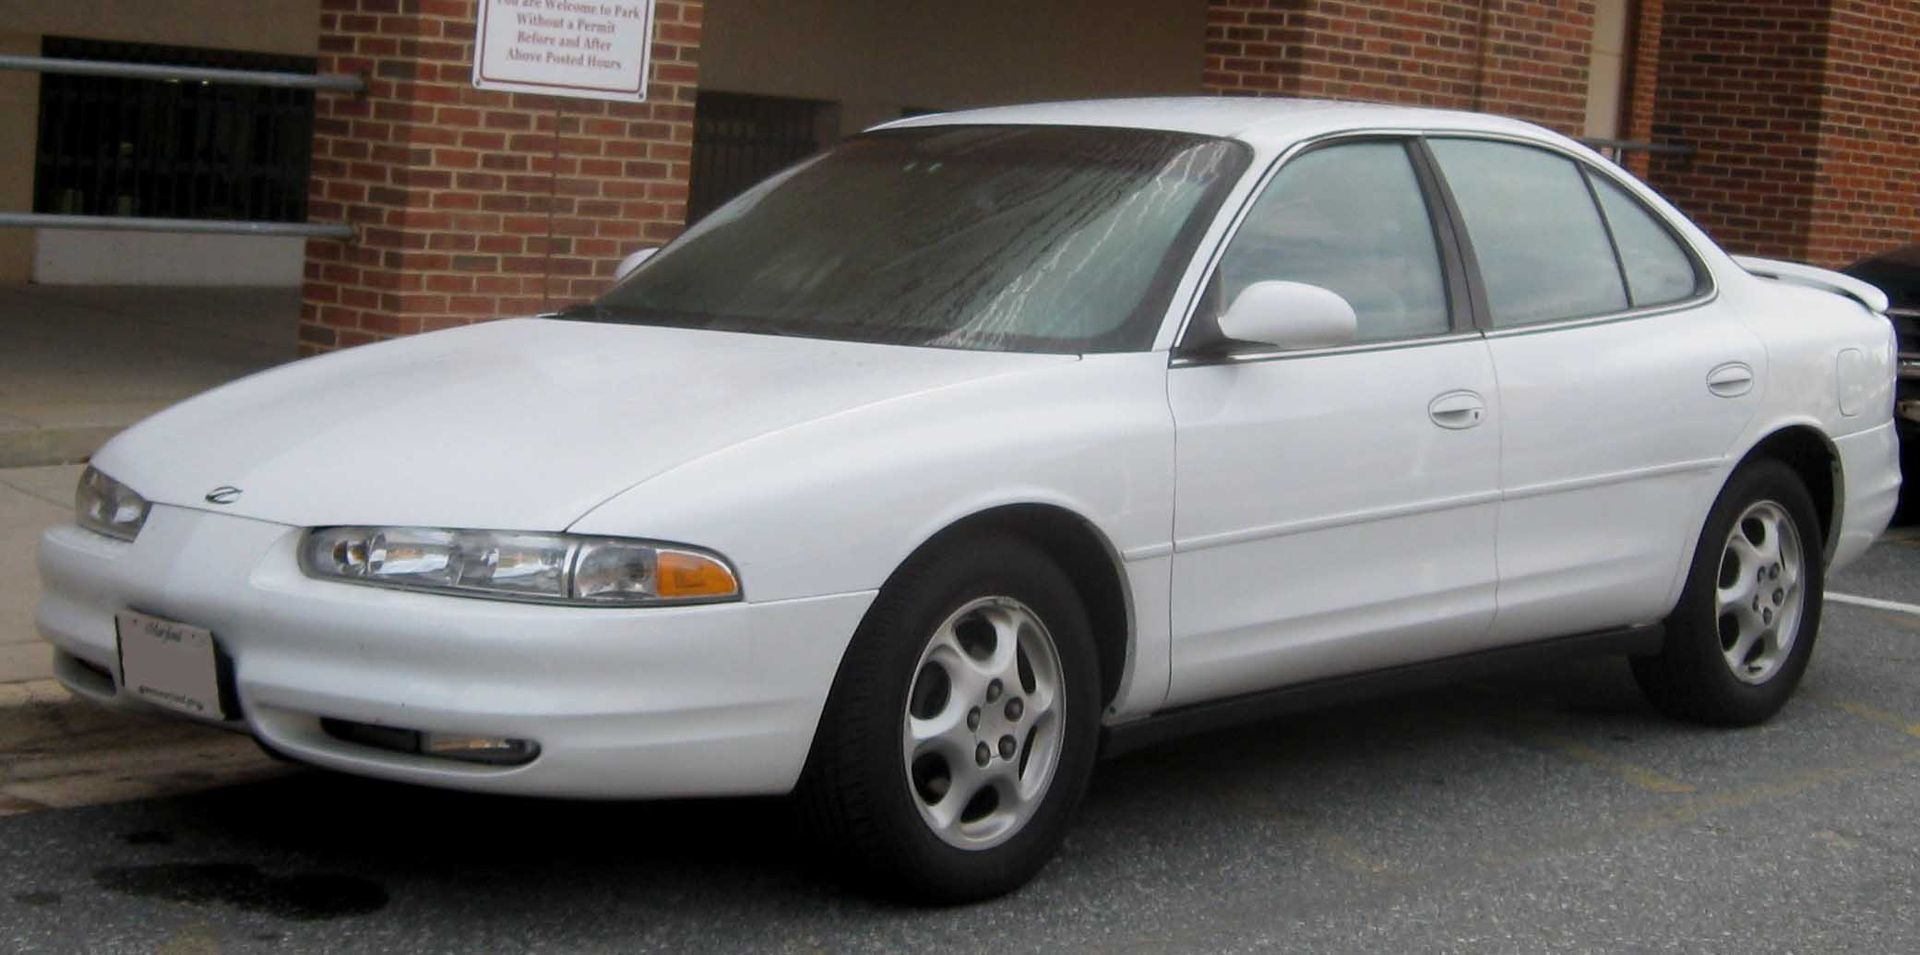 Auto Glass Repair and Replacement for Oldsmobile Intrigue